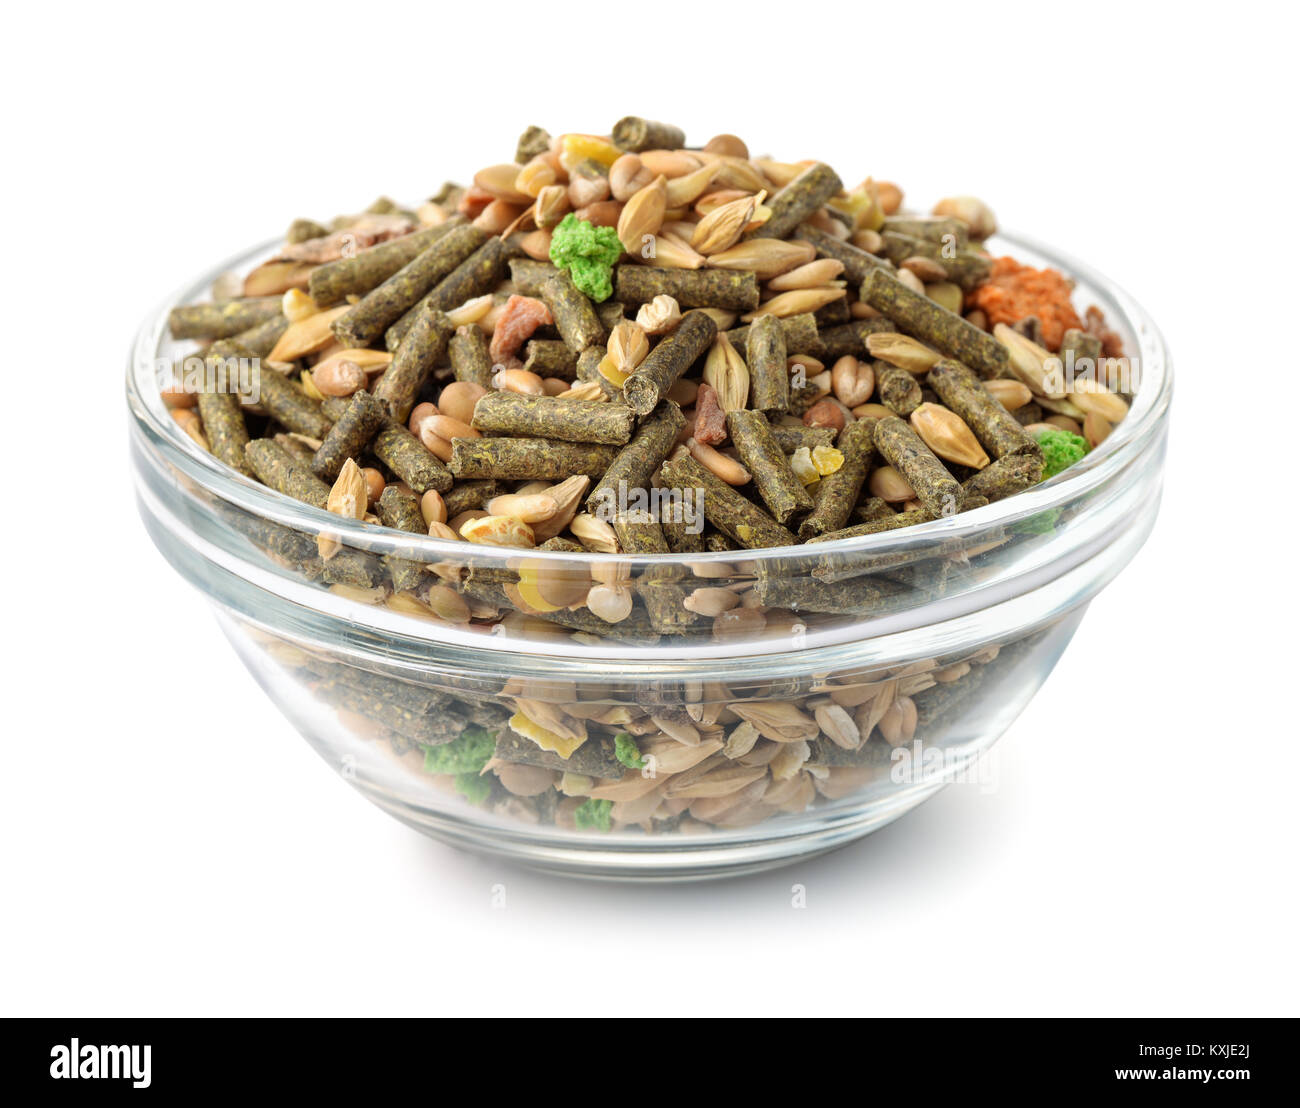 Bowl of compound rodents feed isolated on white - Stock Image